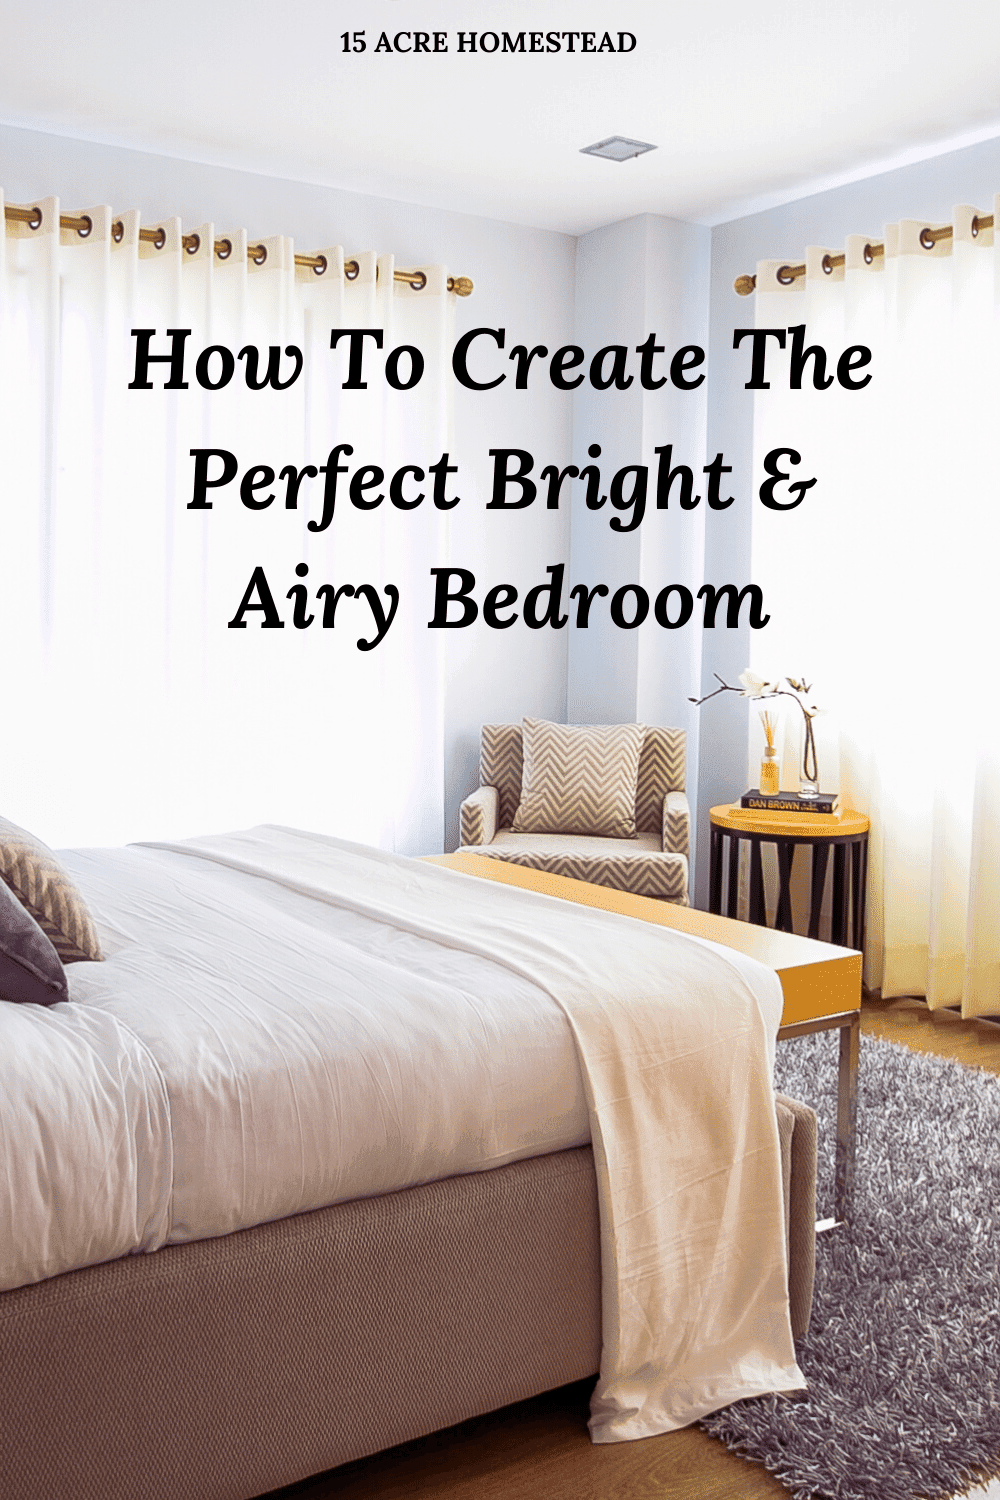 Are you looking to make some changes to your bedroom? Use these tips to create a new bright and airy bedroom again in your home today!